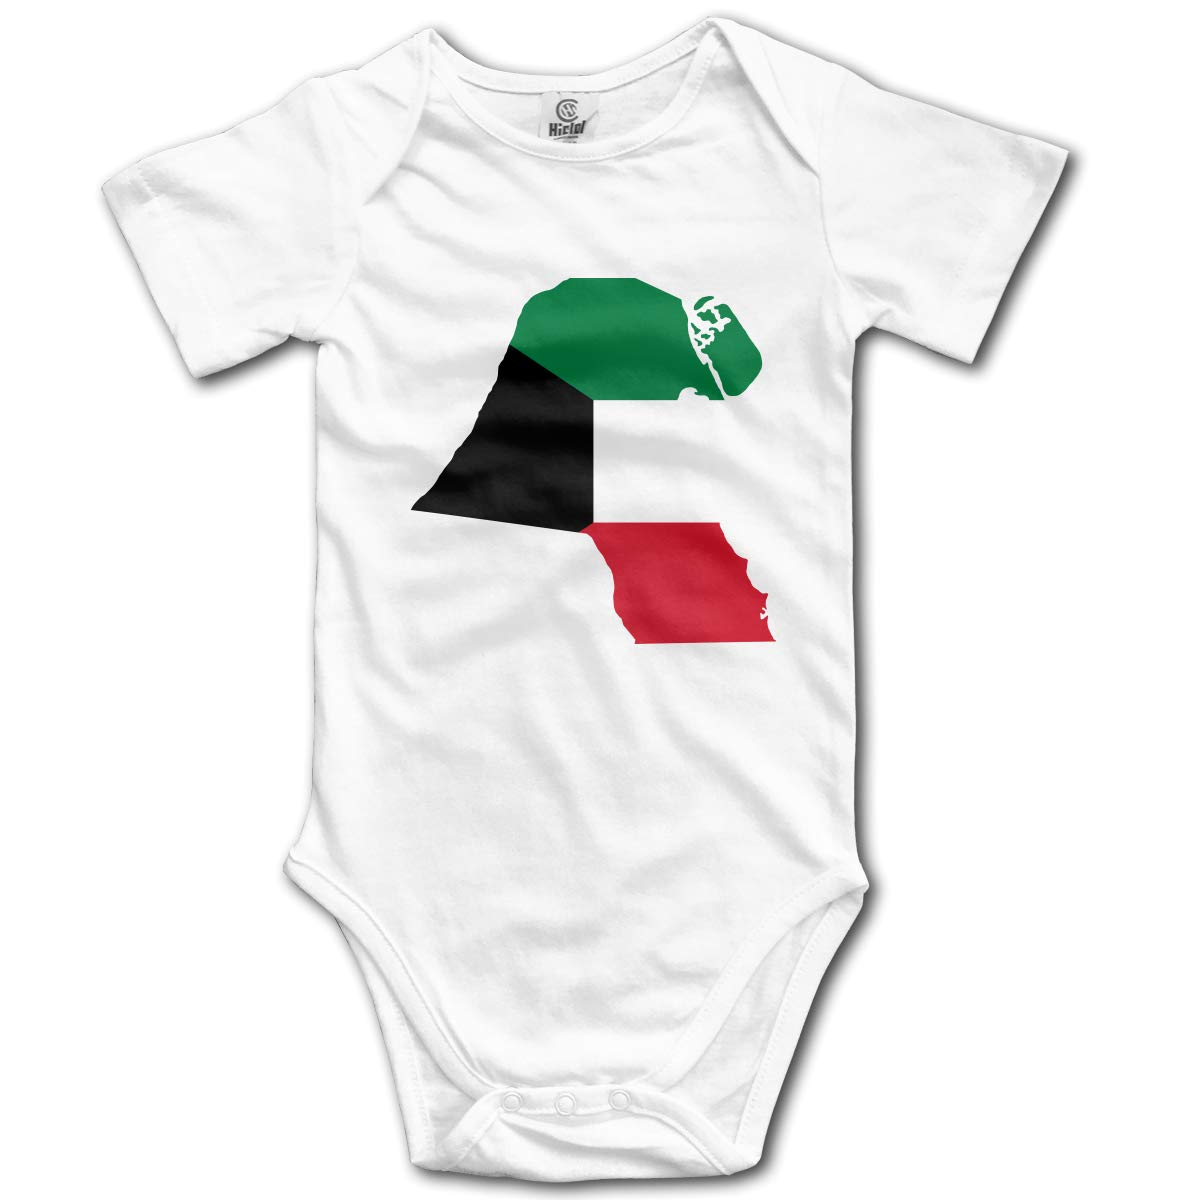 CUTEDWARF Baby Short-Sleeve Onesies Kuwait Flag Map Bodysuit Baby Outfits